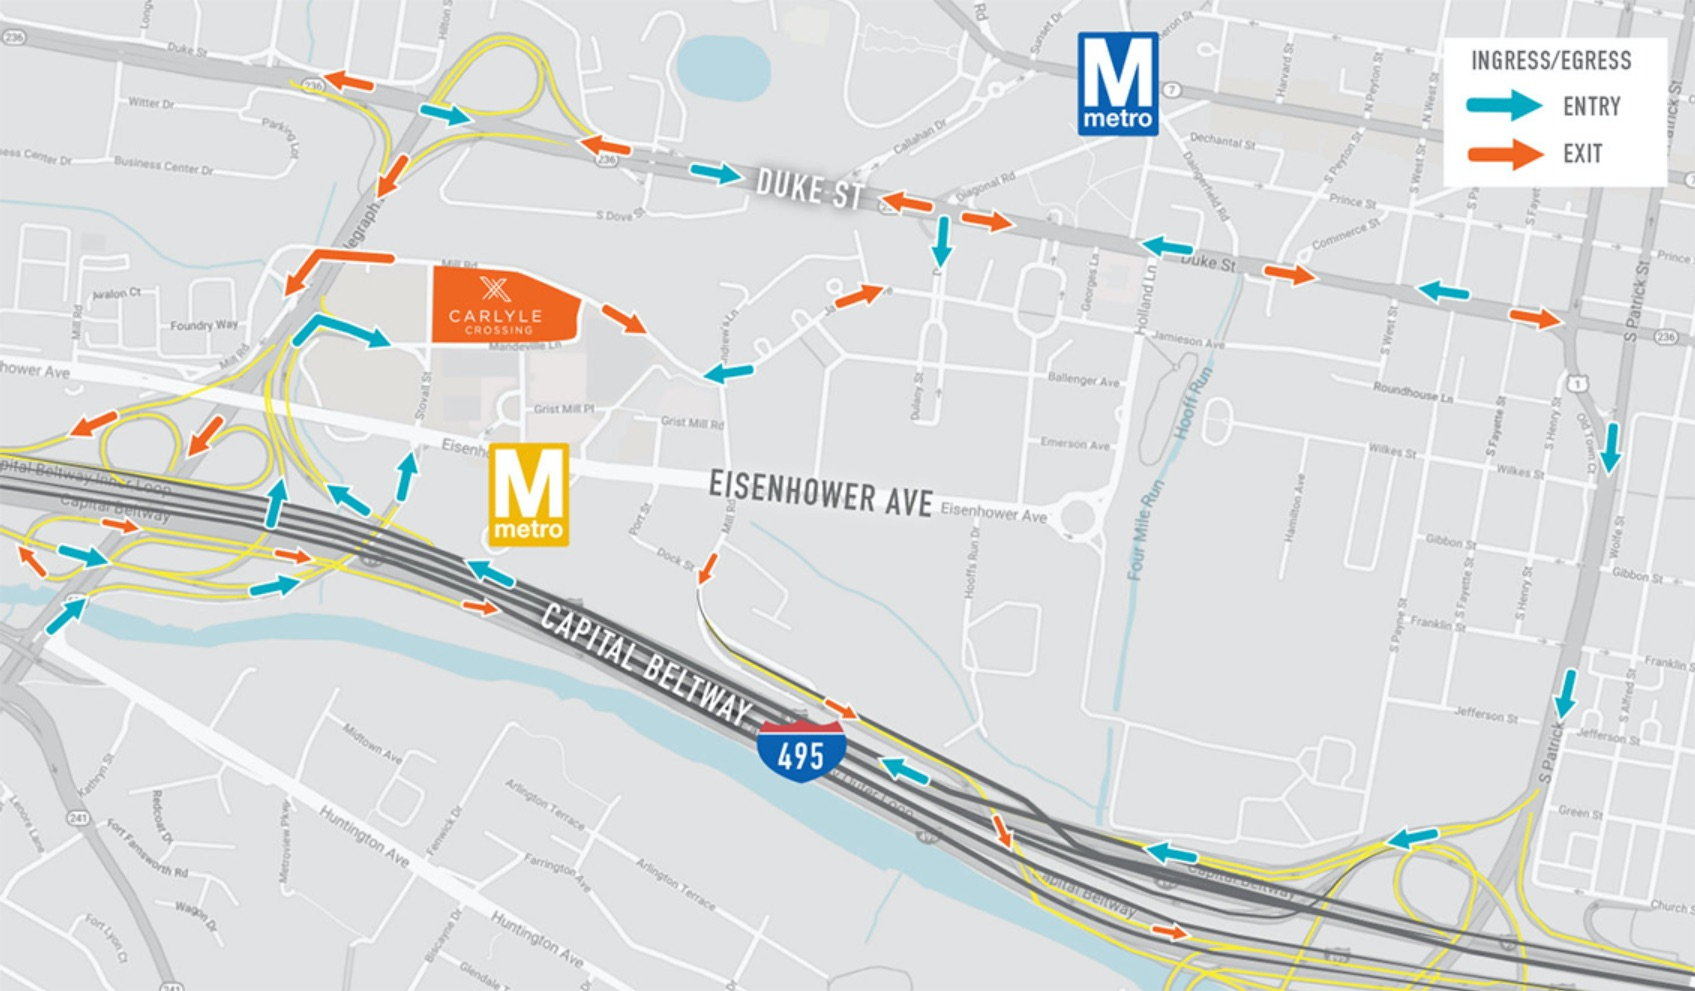 Carlyle crossing access map